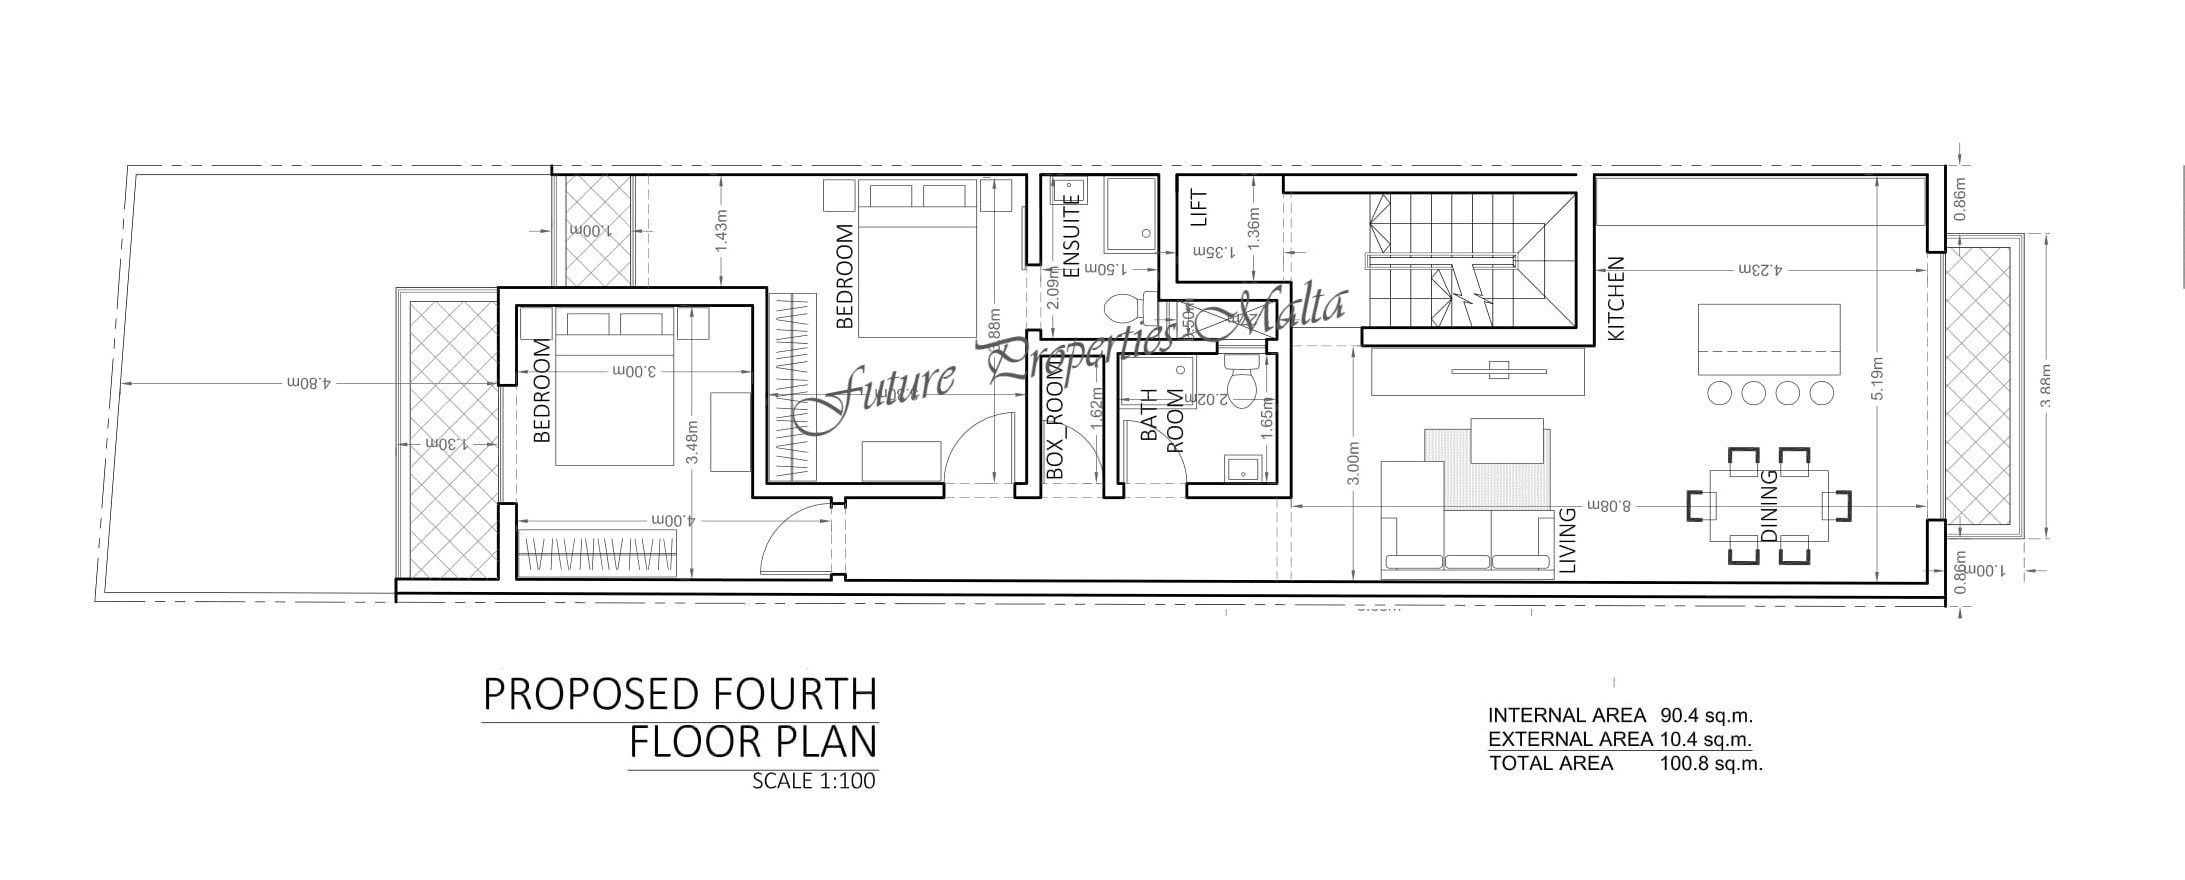 4th.5th.Roof Floor Plans-1